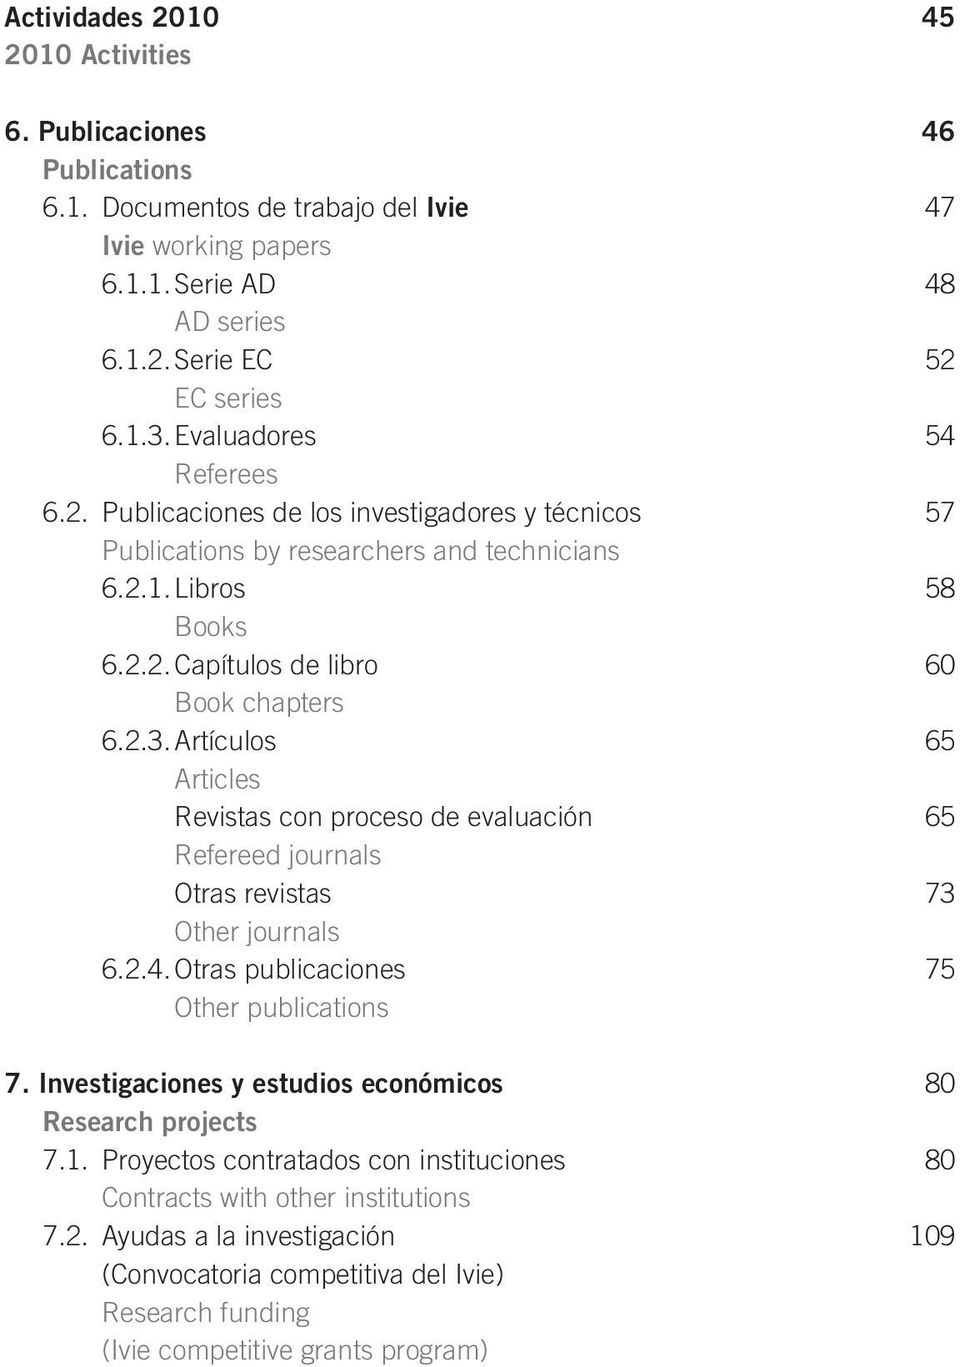 Artículos 65 Articles Revistas con proceso de evaluación 65 Refereed journals Otras revistas 73 Other journals 6.2.4. Otras publicaciones 75 Other publications 7.